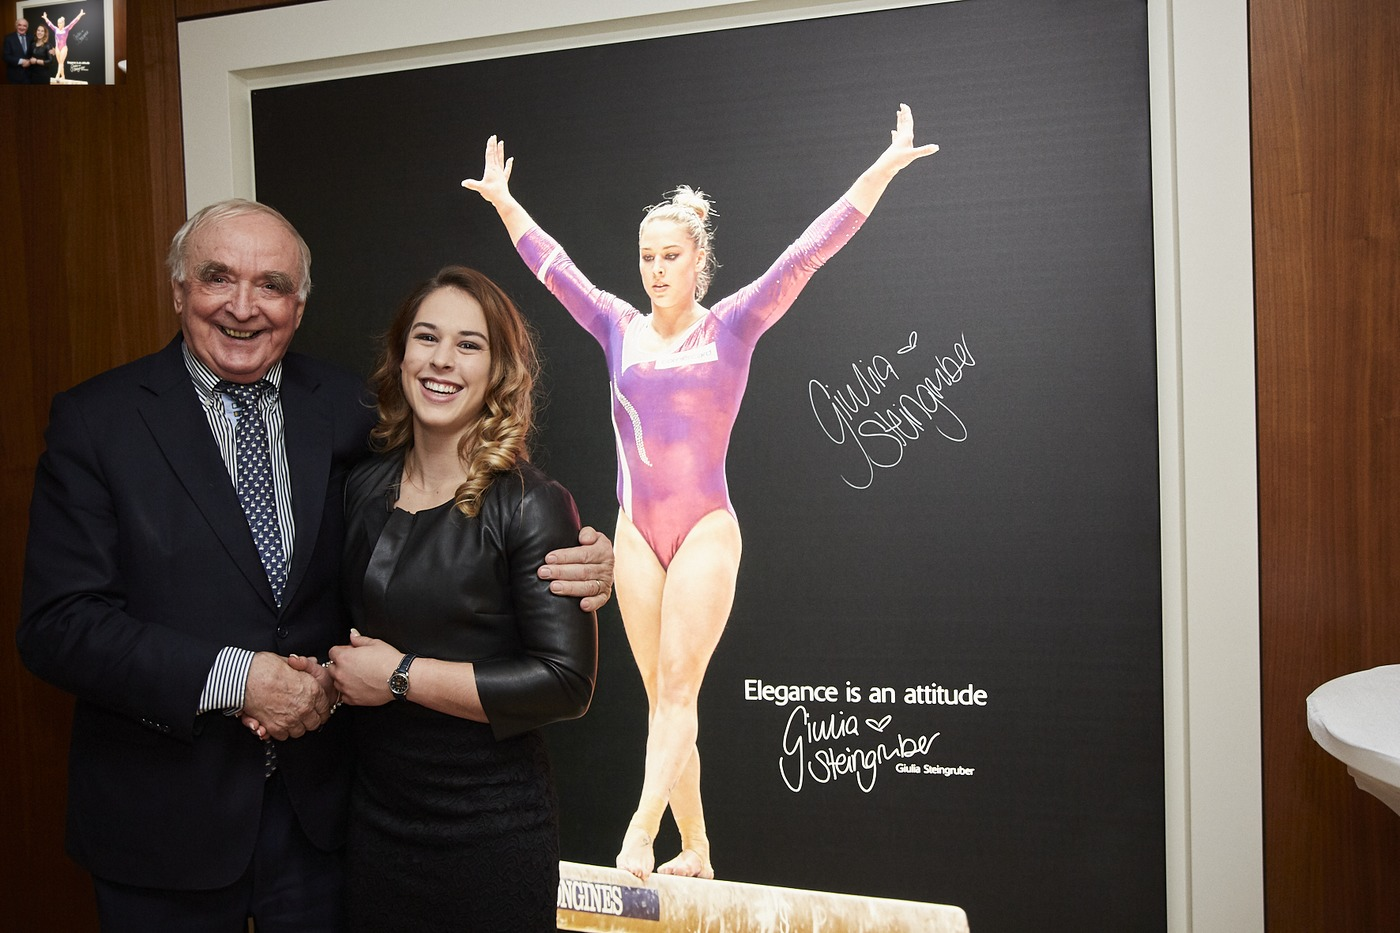 Longines Corporate Event: Longines officially inaugurates its first Corporate Boutique in Switzerland in presence of Giulia Steingruber, Ambassador of Elegance 5